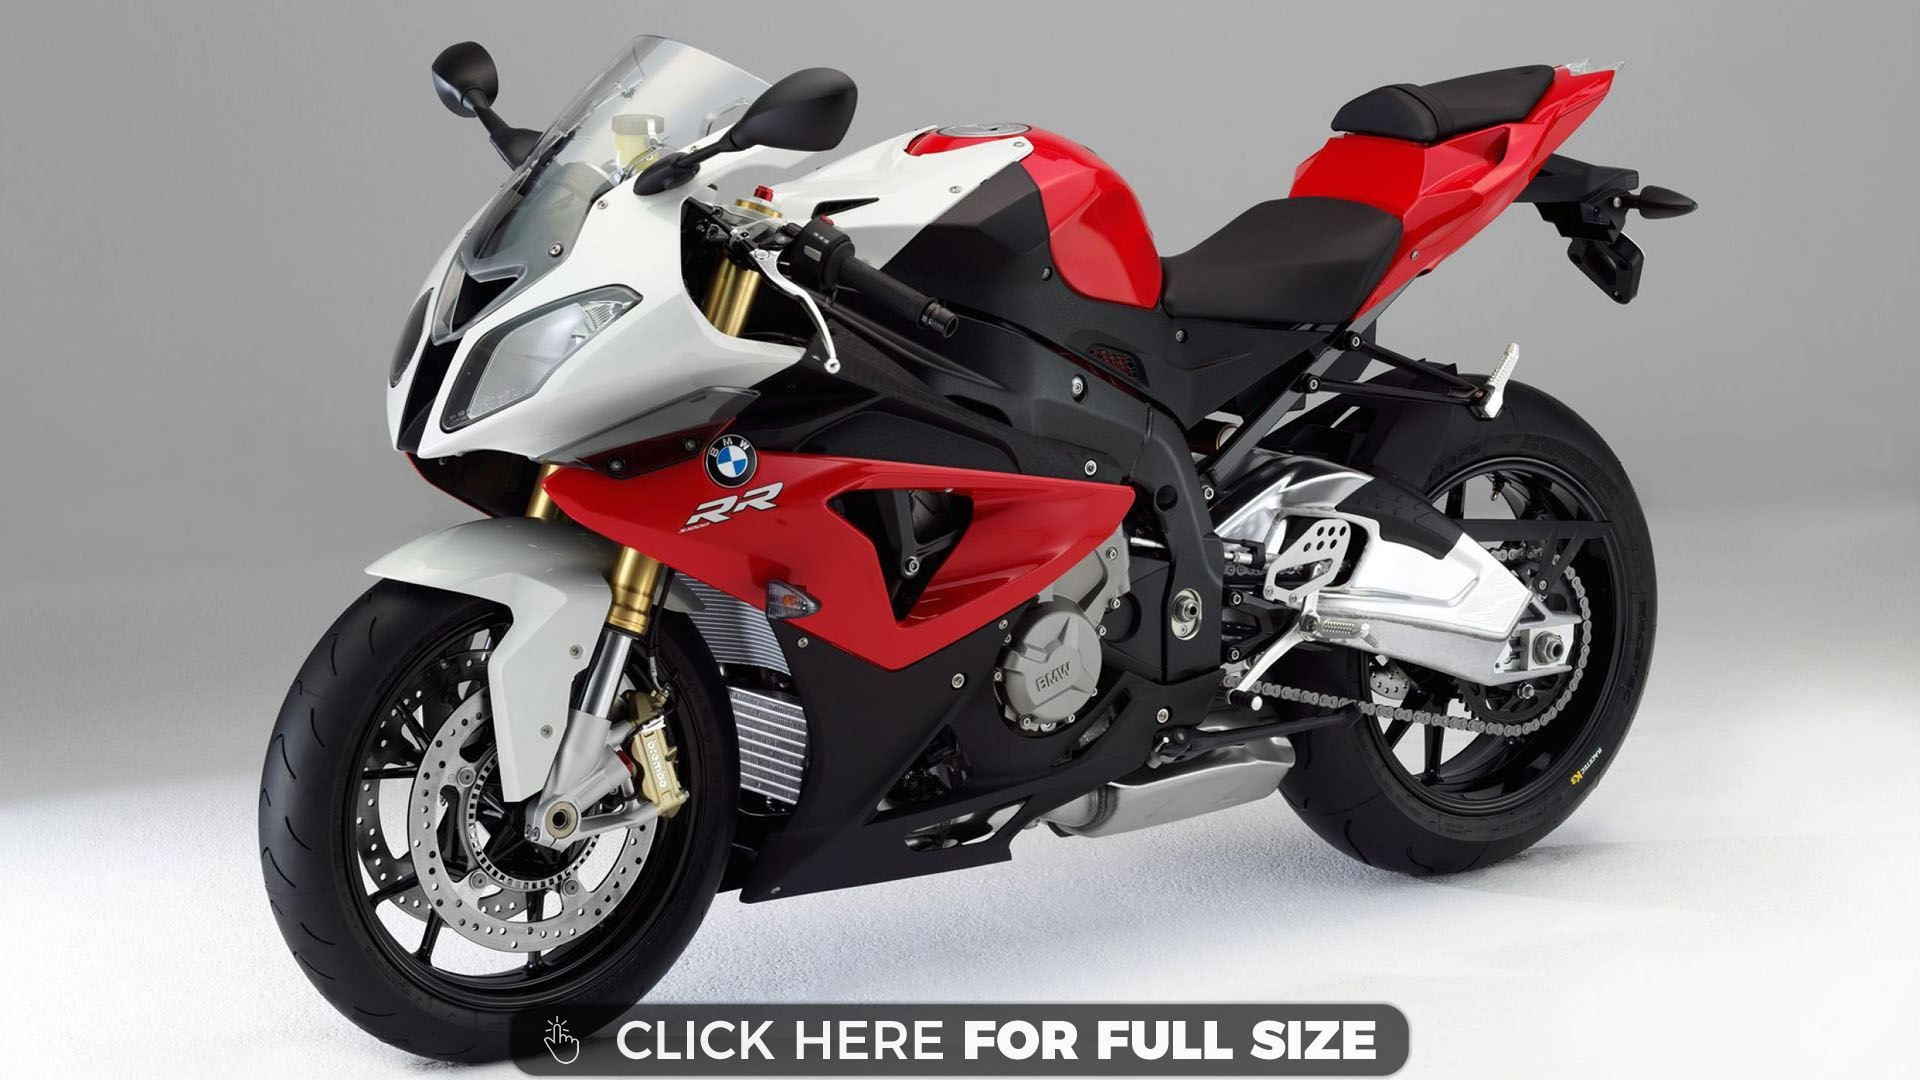 Bmw S1000 Rr Super Bike Hd720p Wallpaper Desktop Wallpapers Bmw